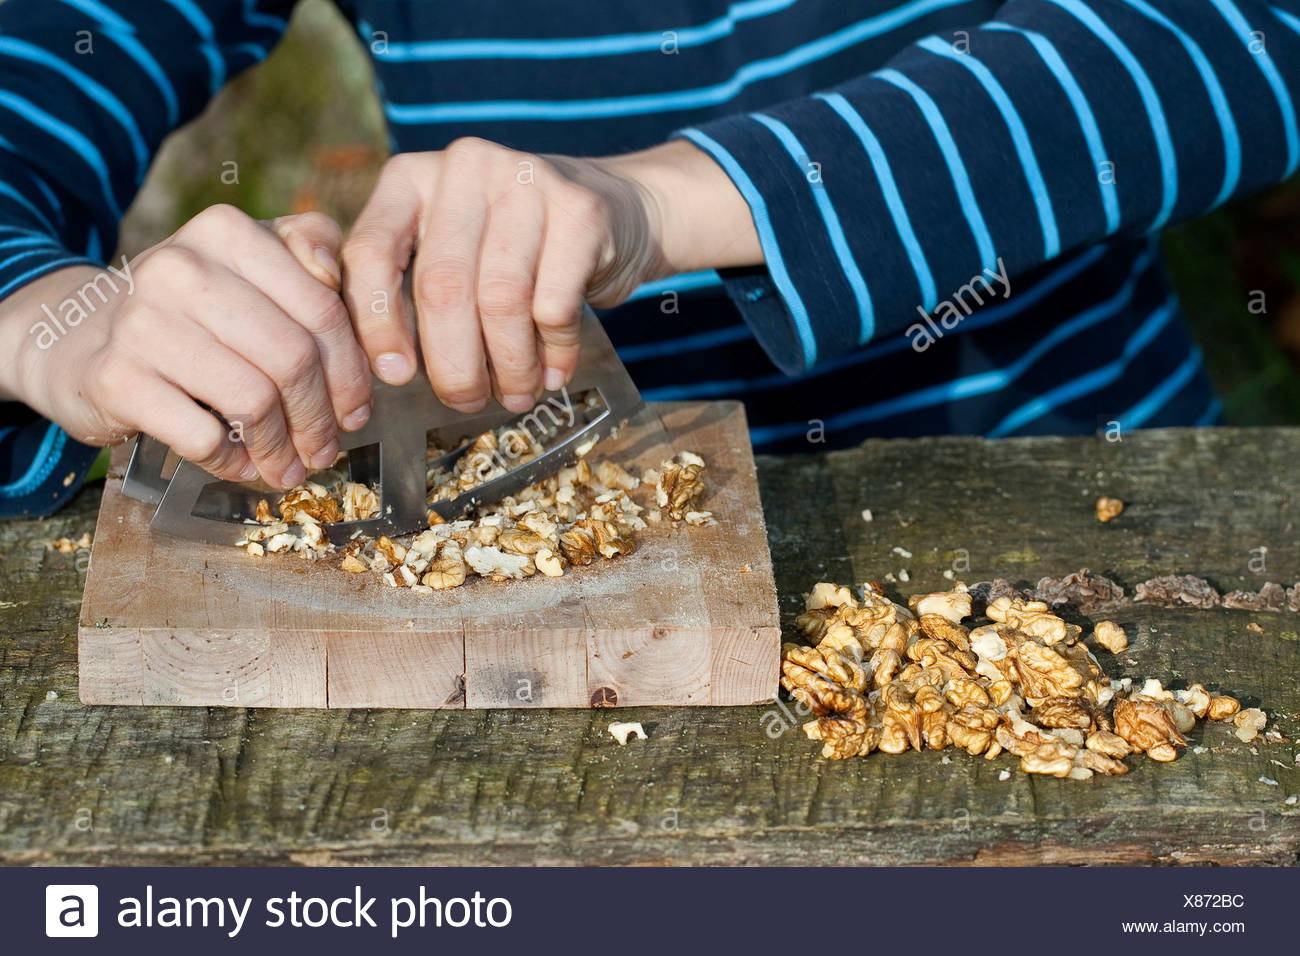 boy making pesto from self-collected walnuts and sunflower seeds, olive oil and parmesan cheese, walnuts are hackled, Germany - Stock Image